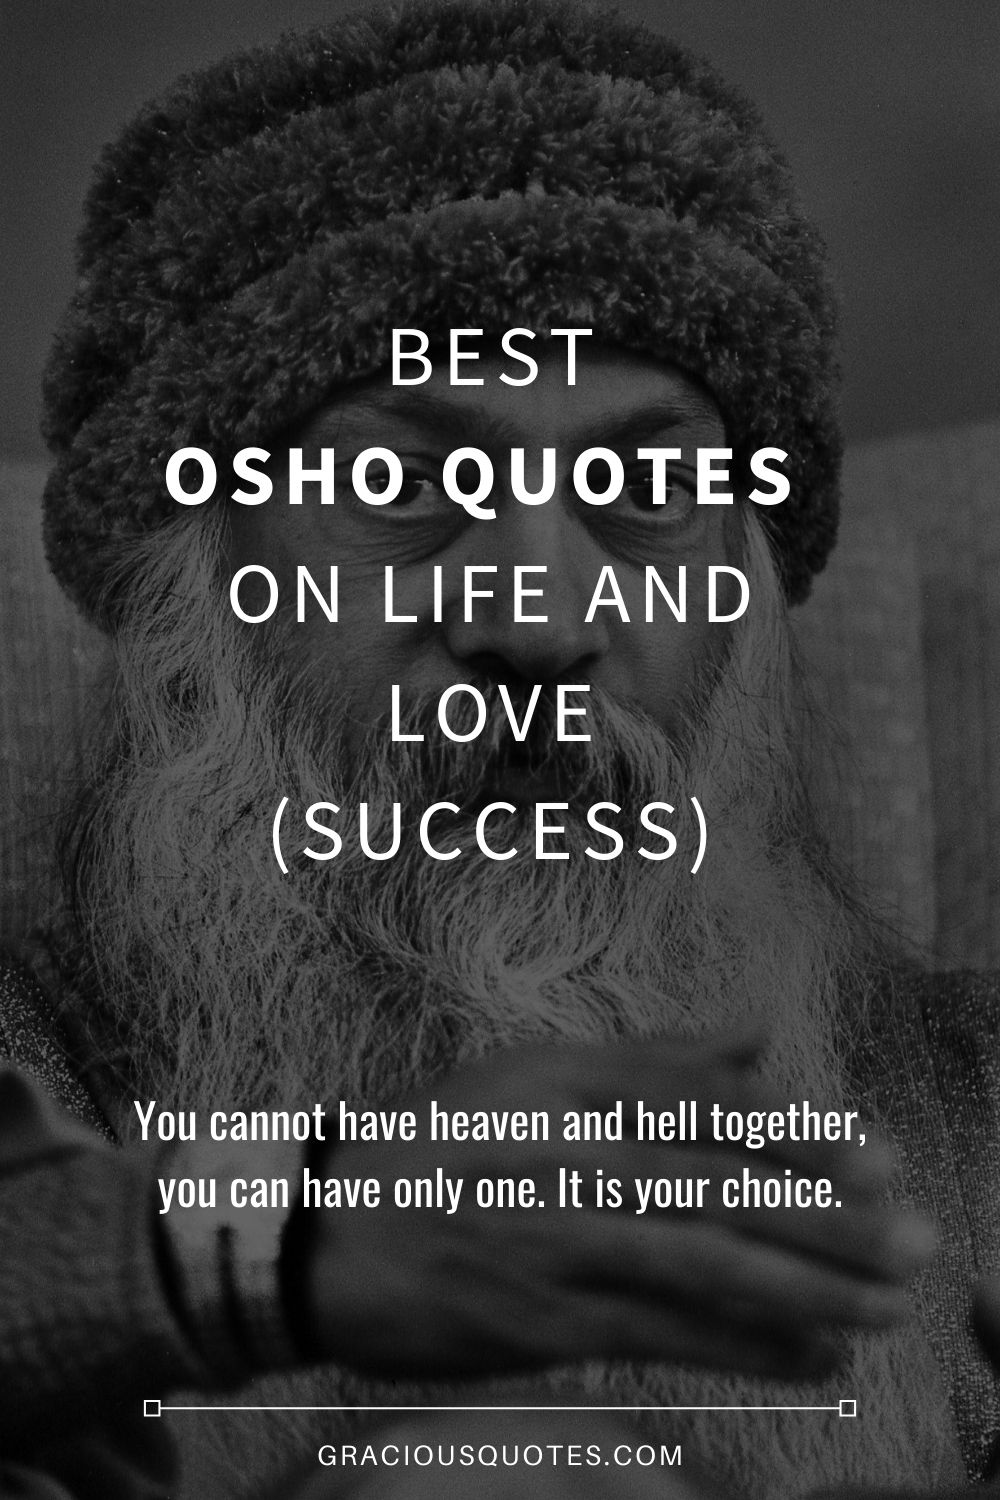 9 Best Osho Quotes on Life and Love (SUCCESS)